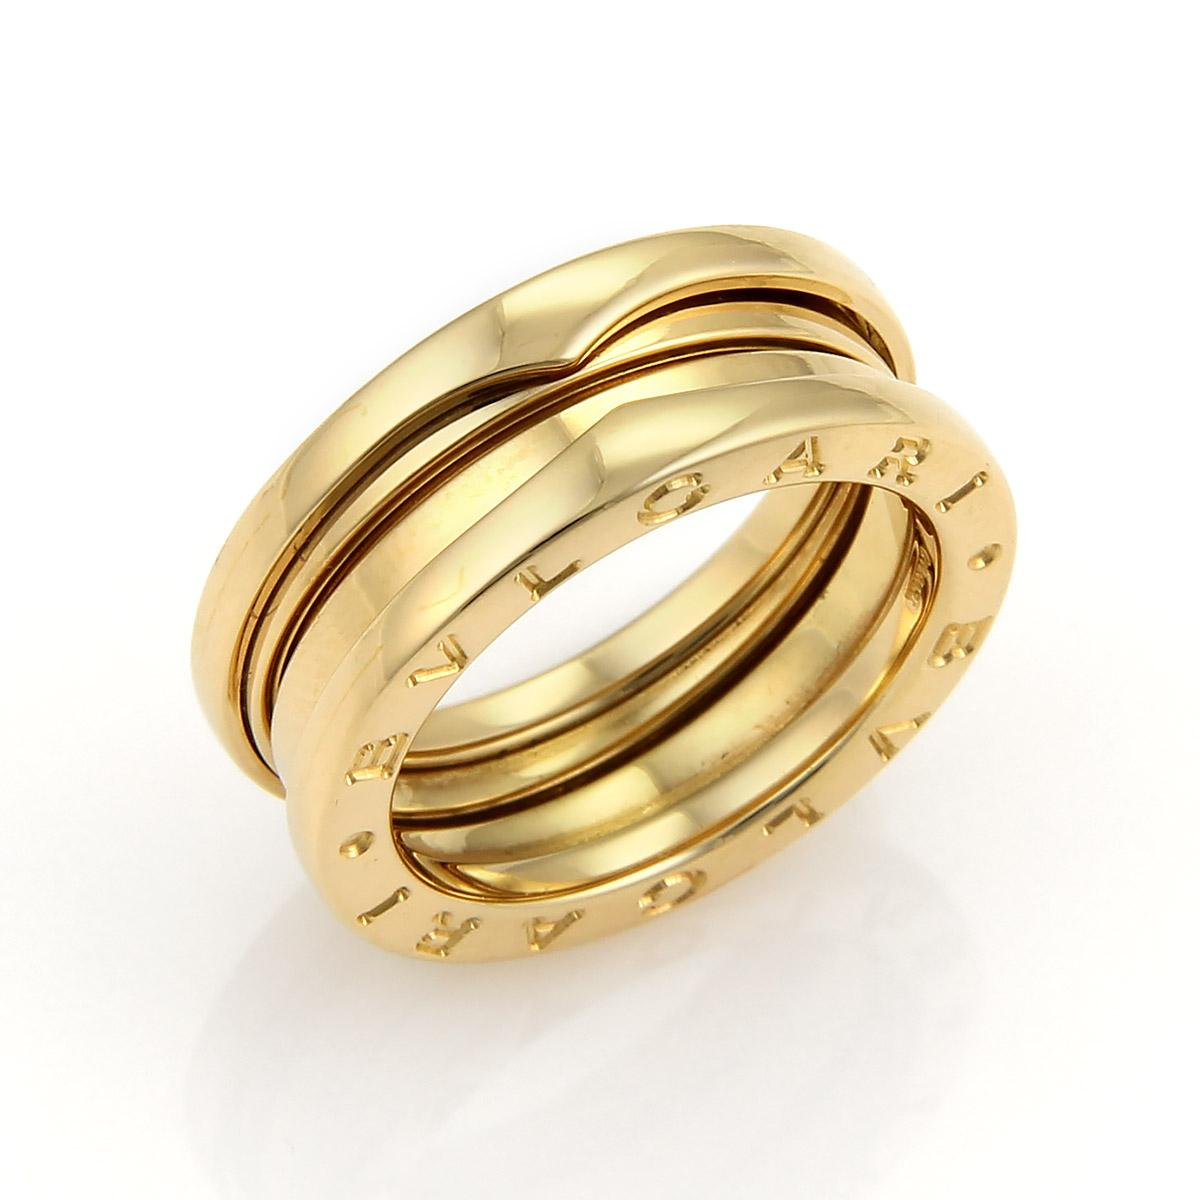 bvlgari bvlgari bzero1 wide 18k yellow gold band ring 7mm